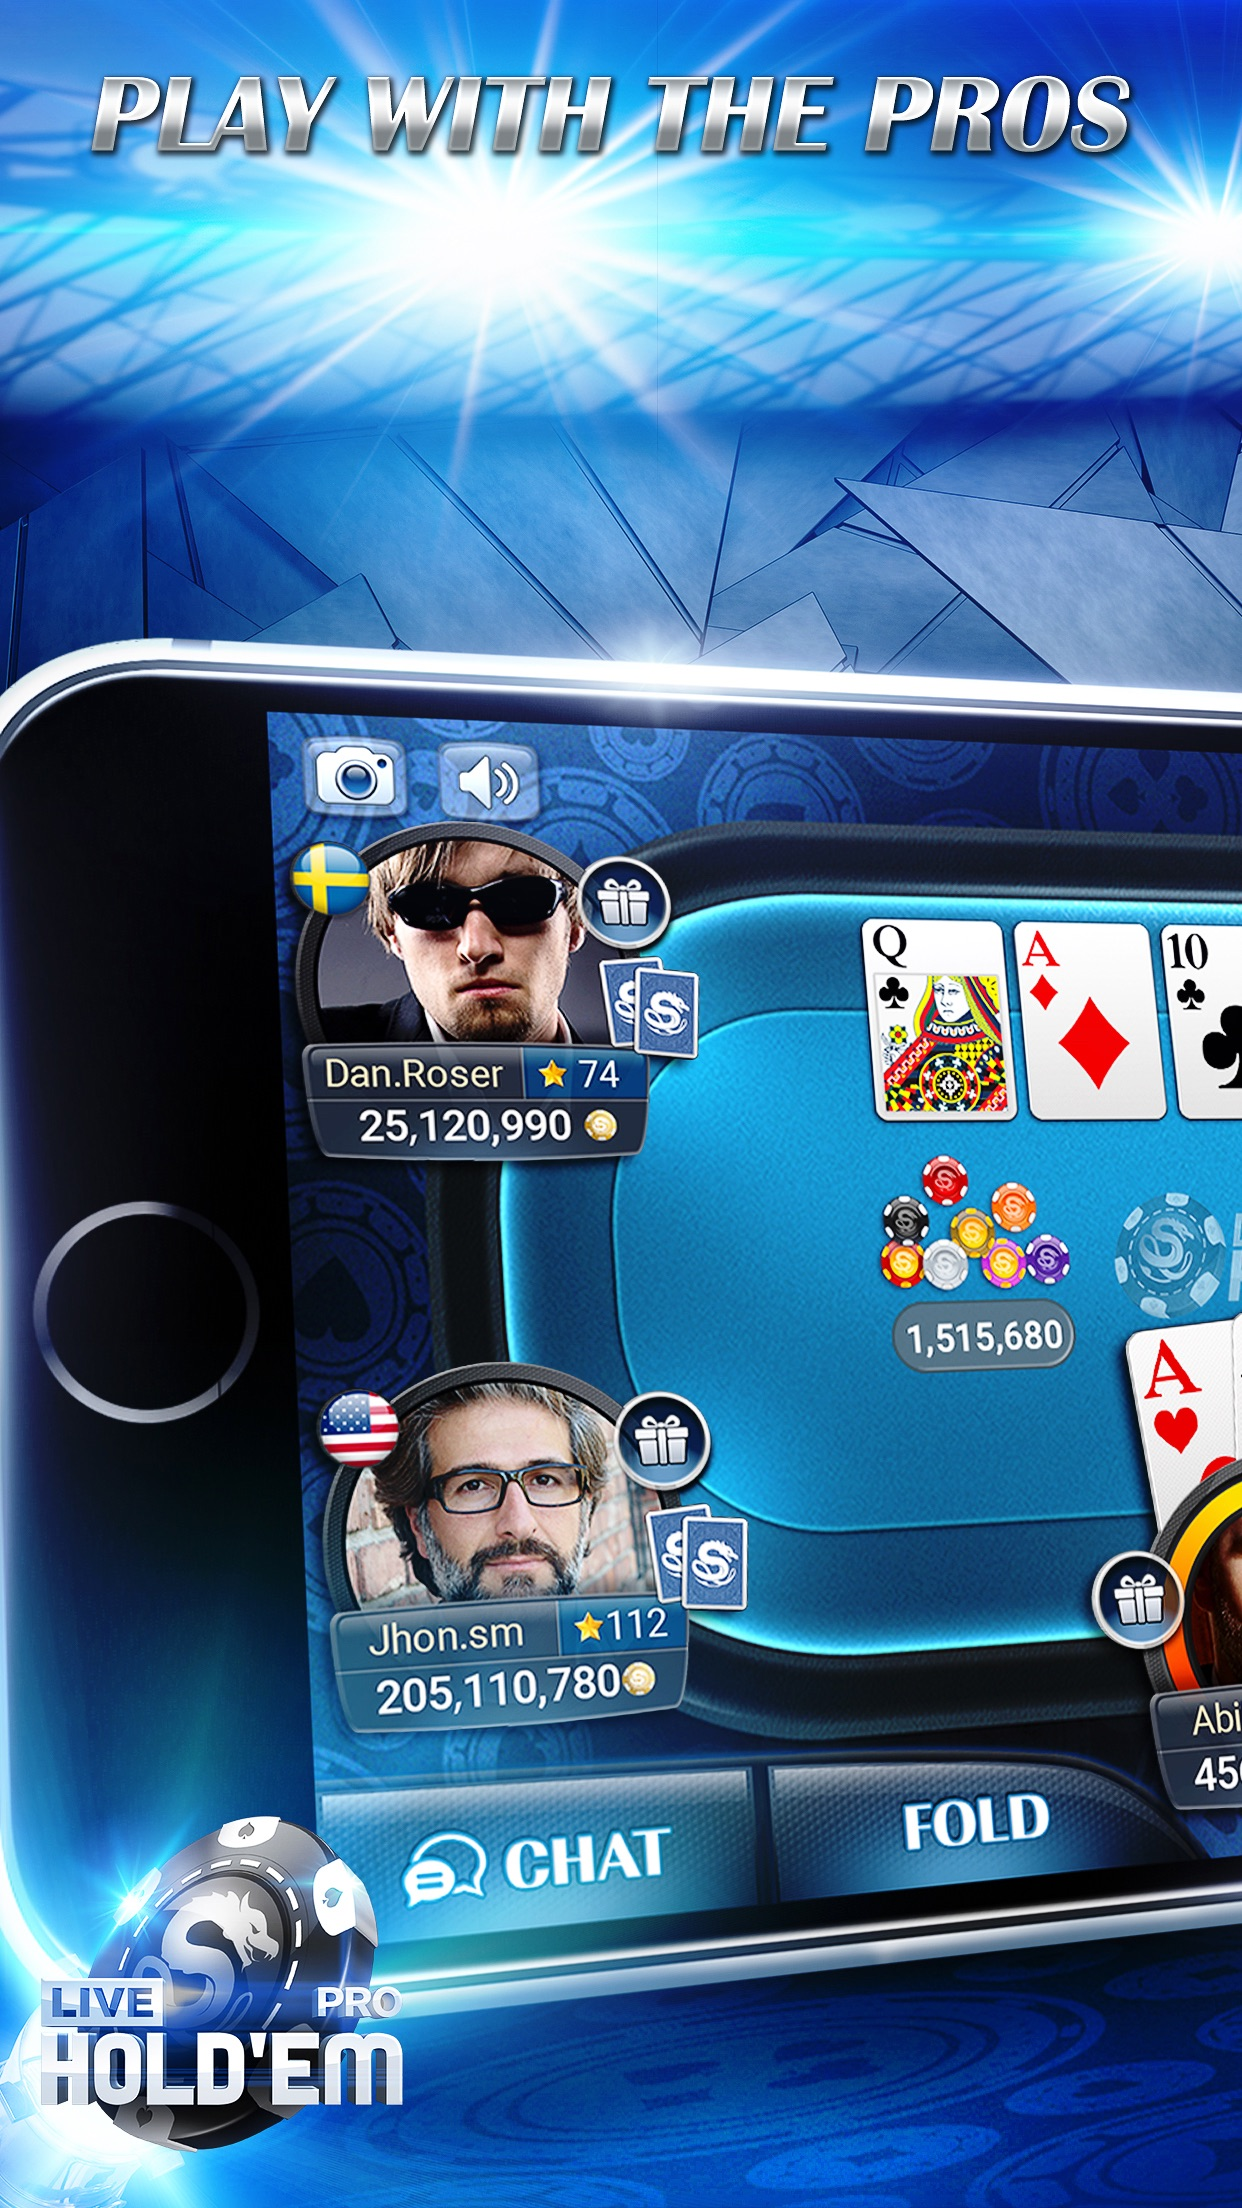 Live Hold'em Pro - Poker Game Screenshot